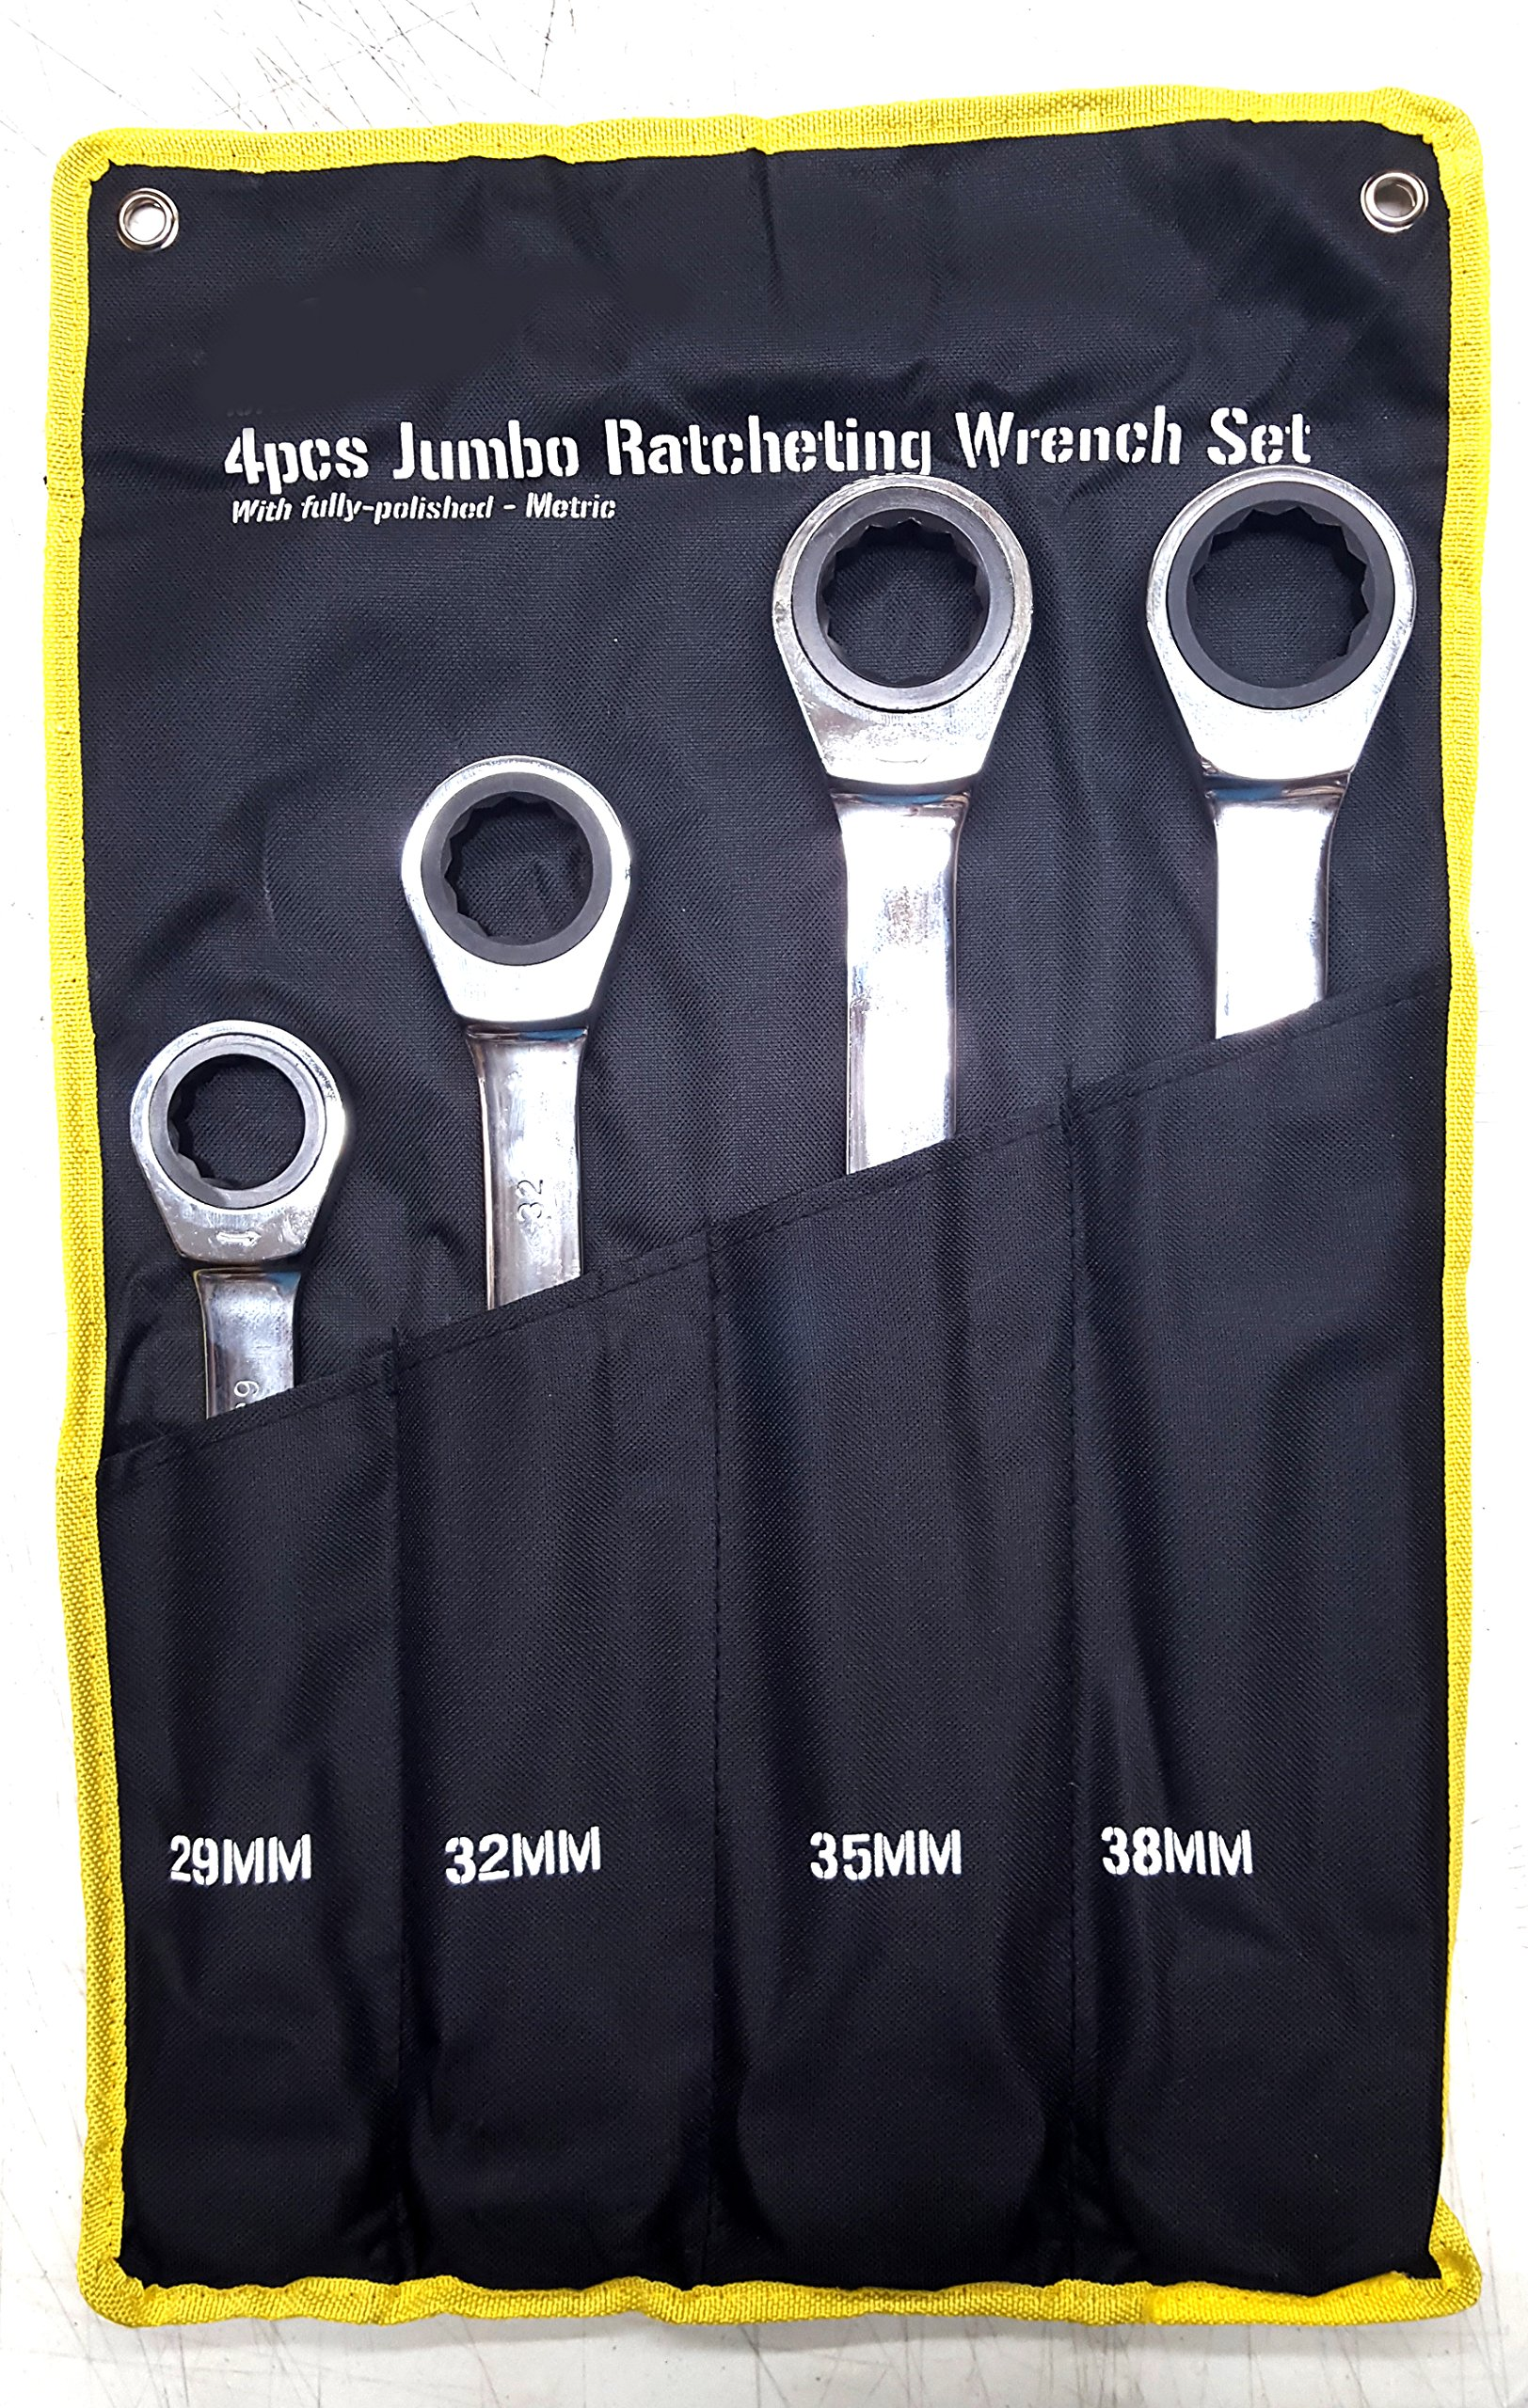 4PC MM SUPER JUMBO RATCHETING WRENCH SET With PORTABLE BAG